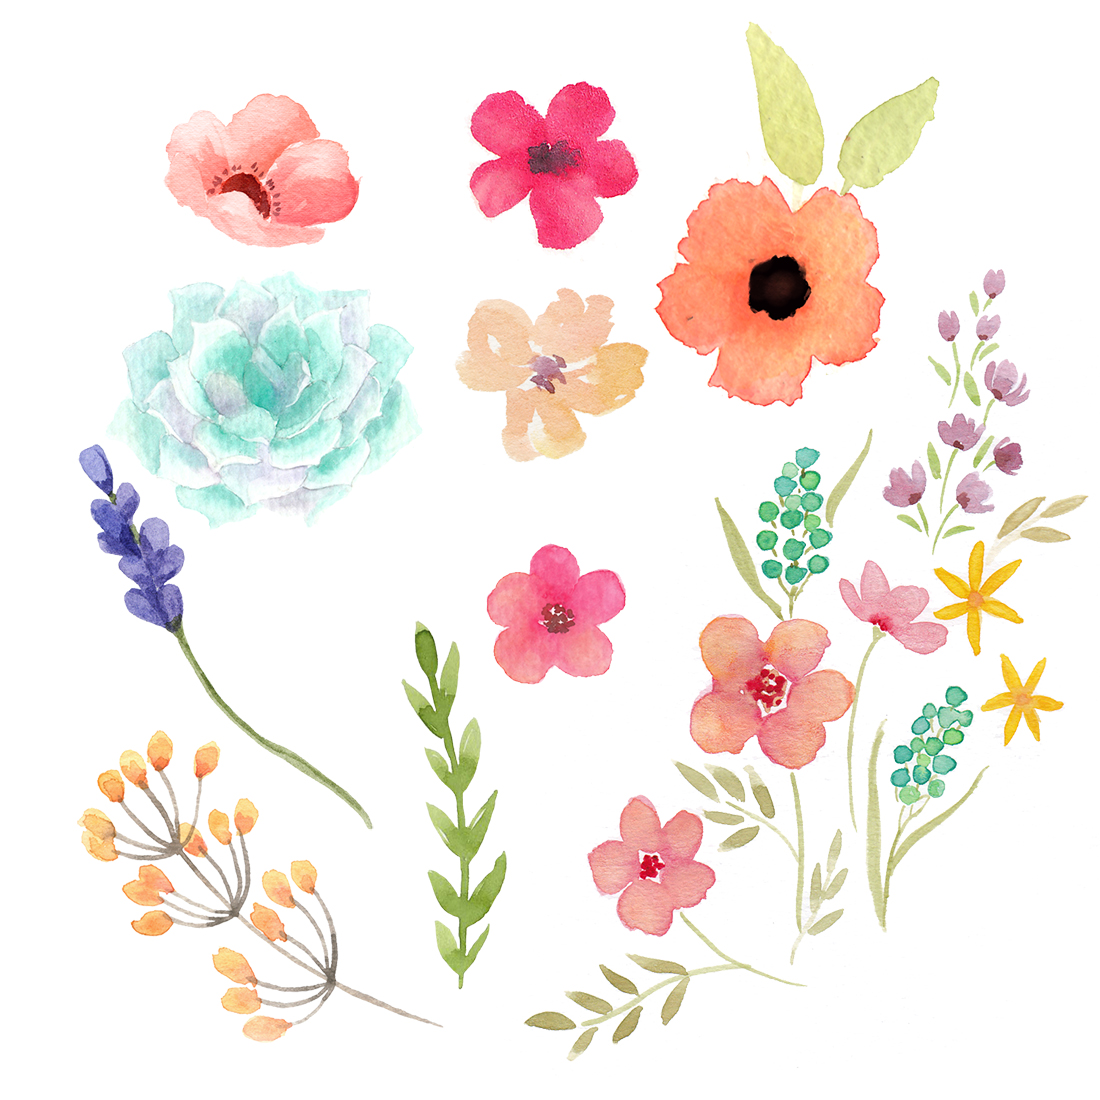 Flourish And Florals Freehand Calligraphy And Watercolor Workshop